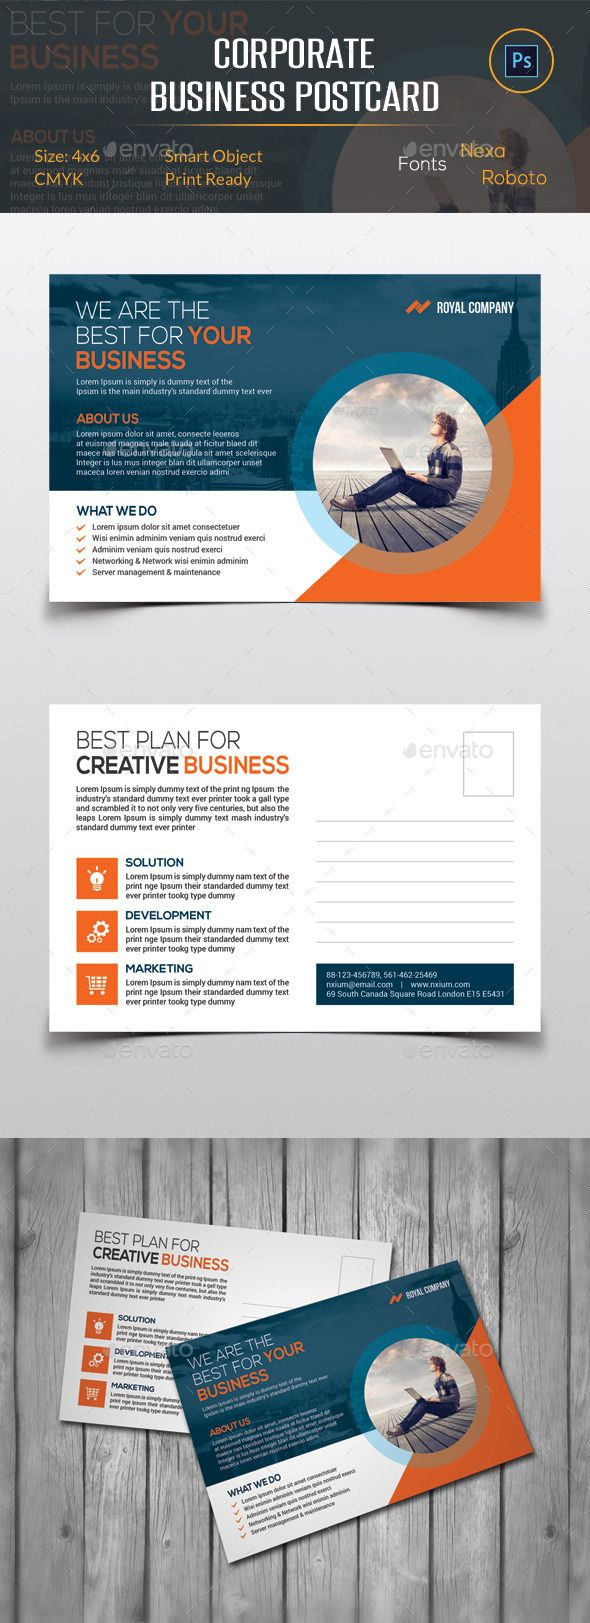 Corporate Business Postcard Template #design #print Download: http://graphicriver.net/item/corporate-business-postcard/11943934?ref=ksioks